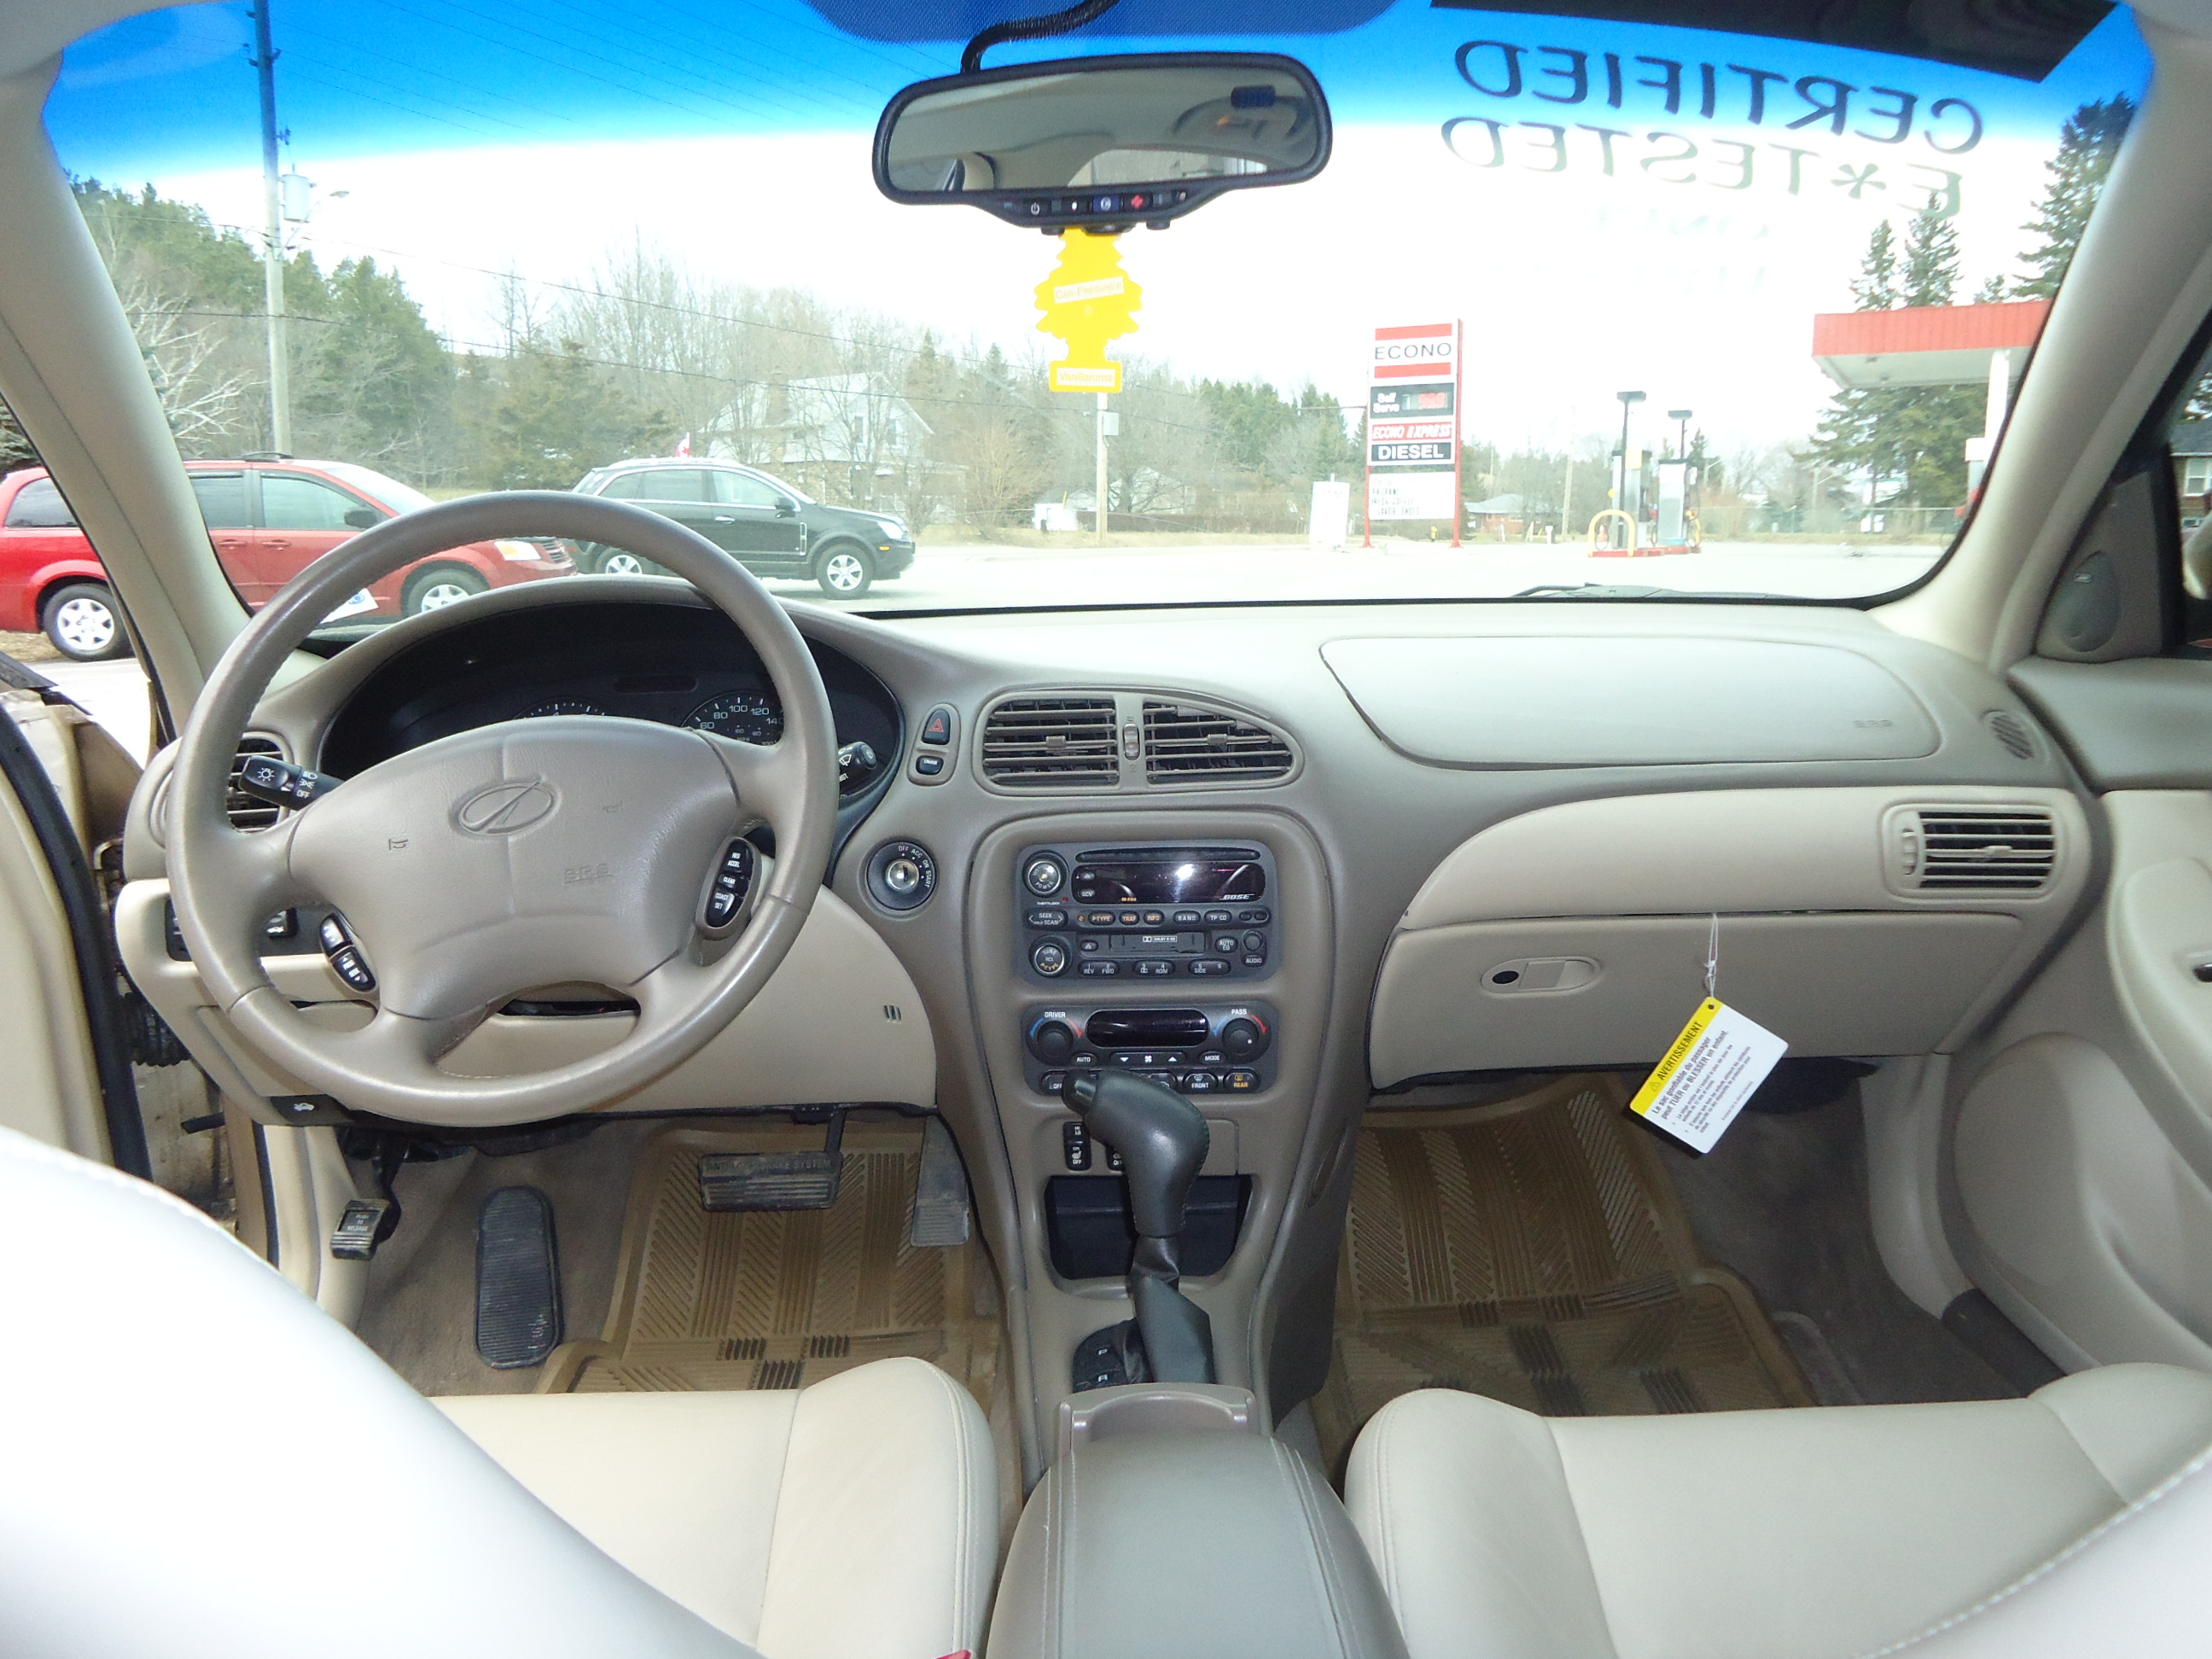 2002 olds intrigue interior 2